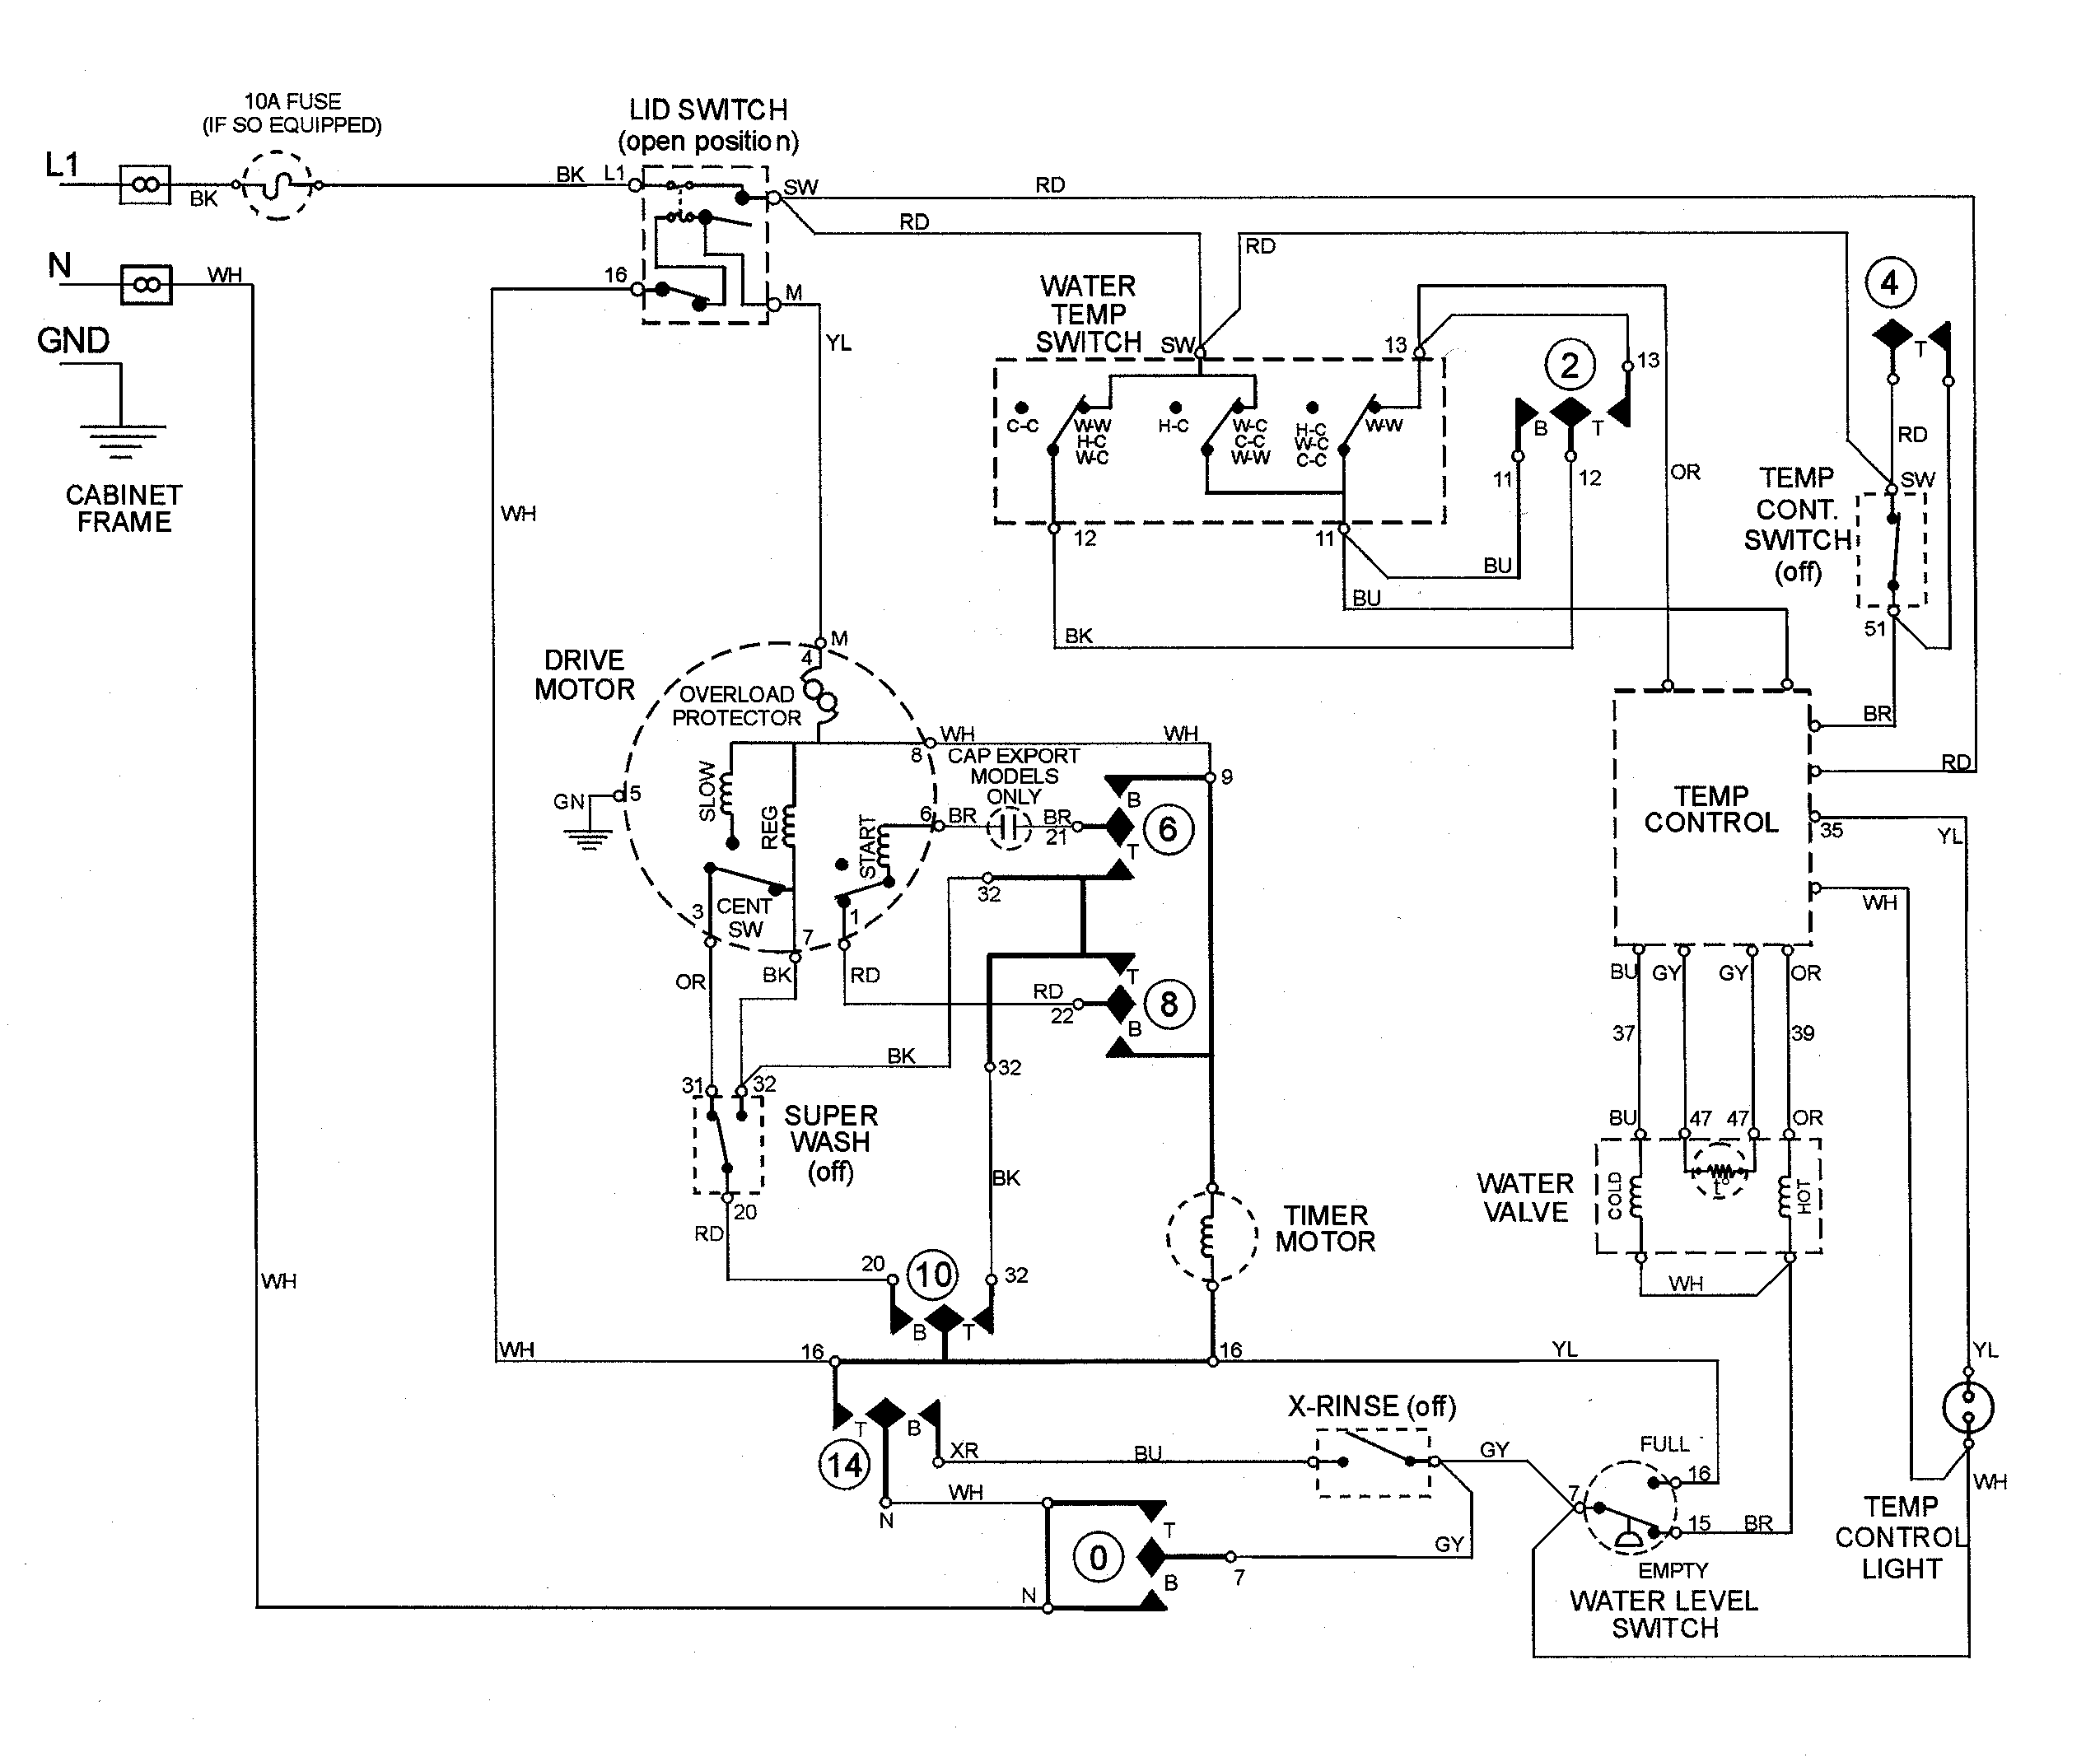 Wiring Diagram Of Washing Machine Motor Http Bookingritzcarlton Info Wiring Diagram Of Wa Washing Machine Motor Electrical Diagram Electric Dryers